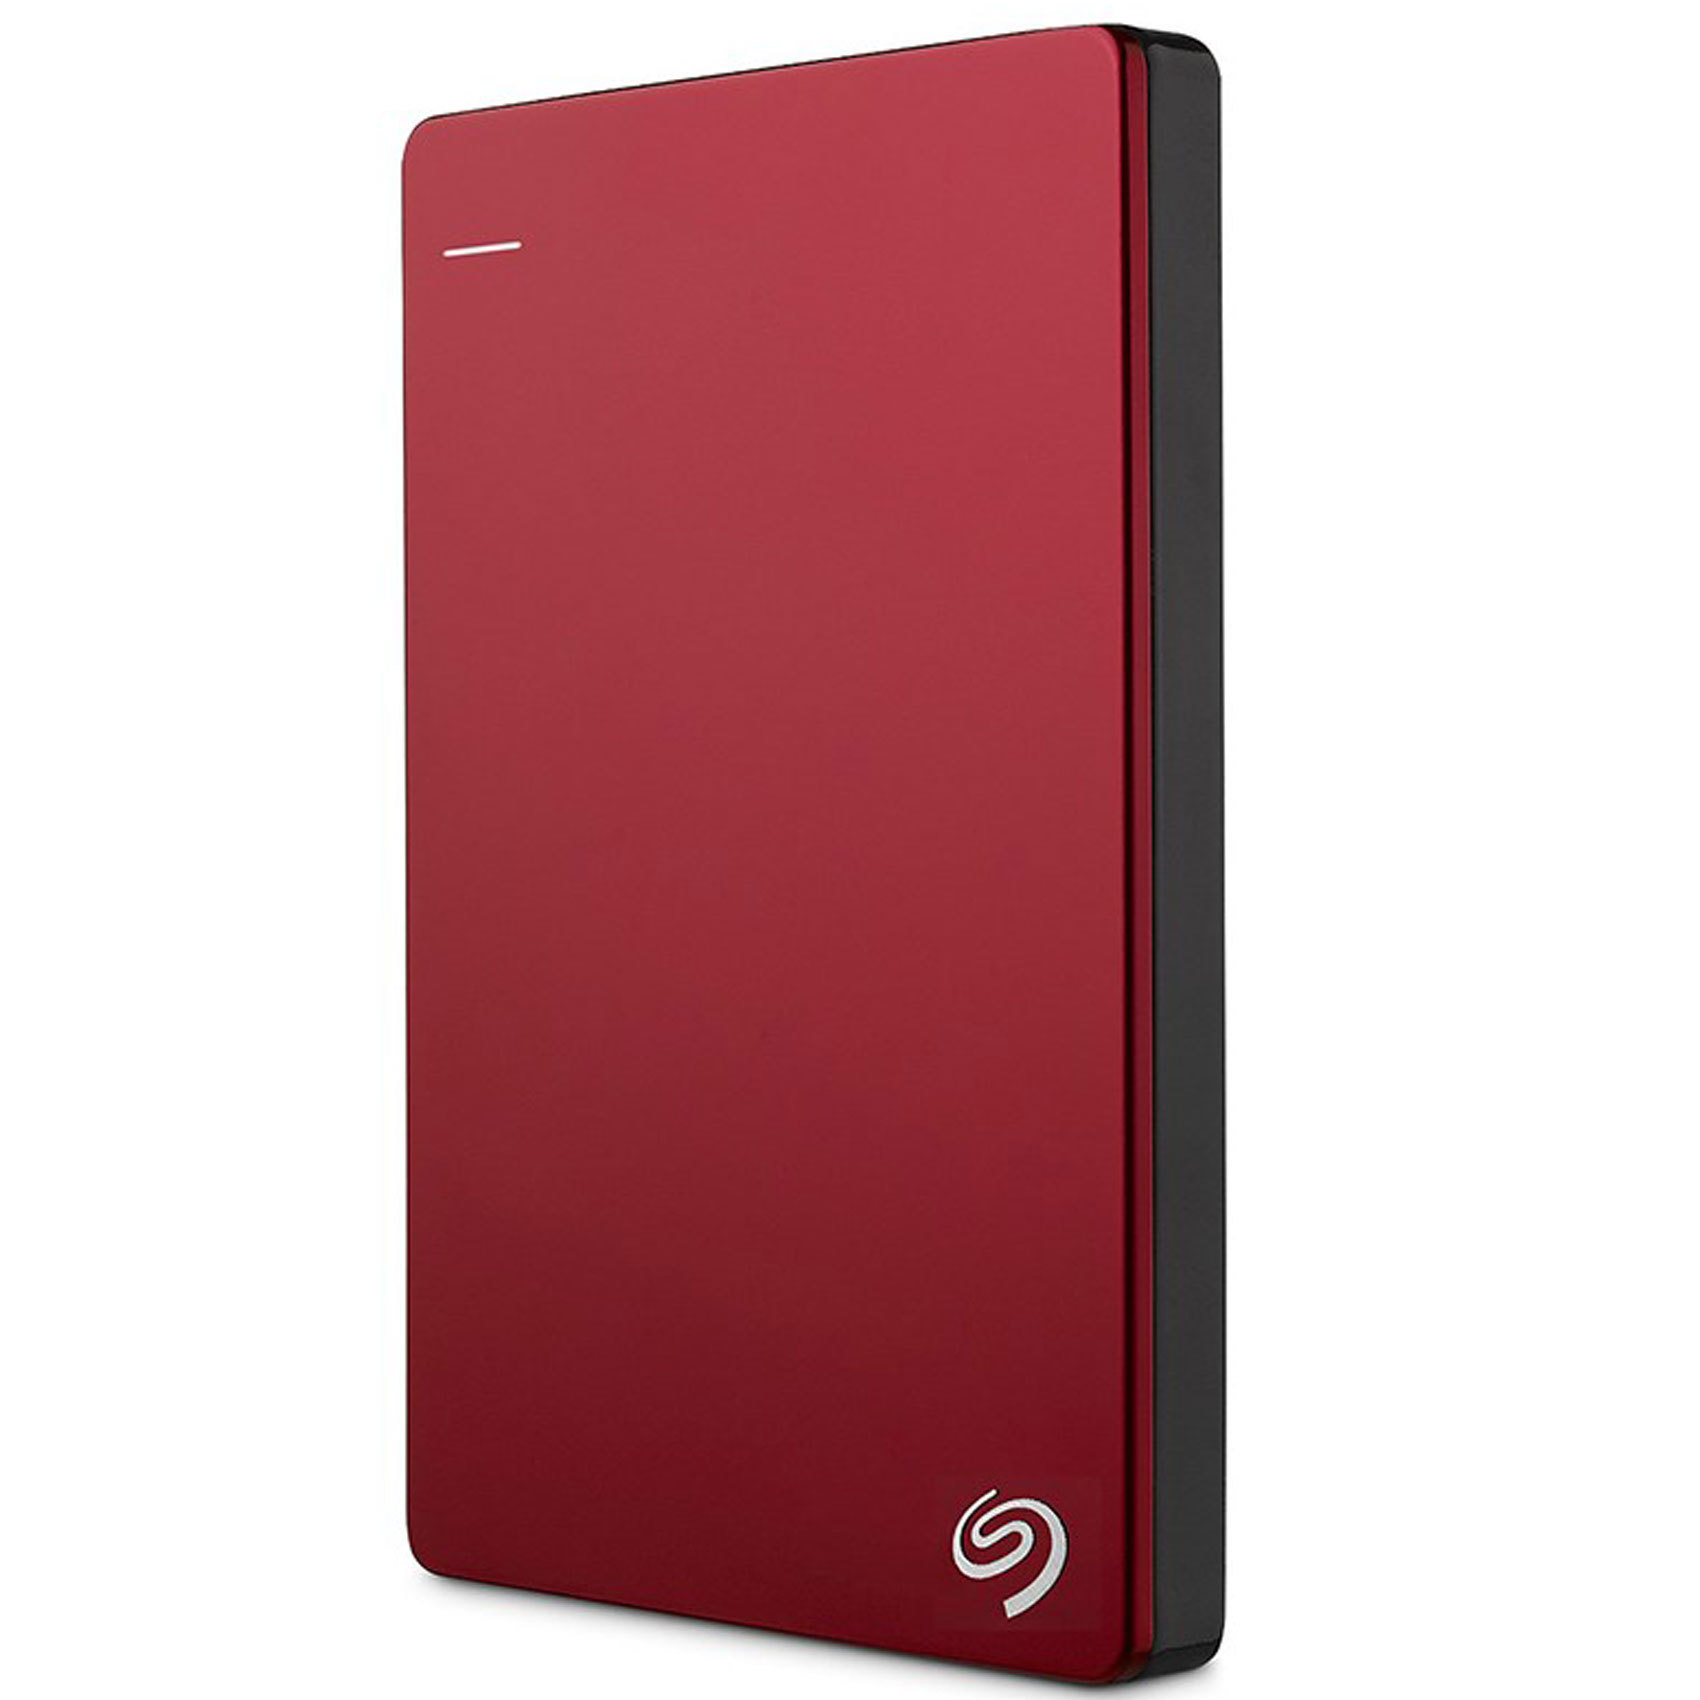 SEAGATE HDD 1TB BKUP+ PORT SLIM RD